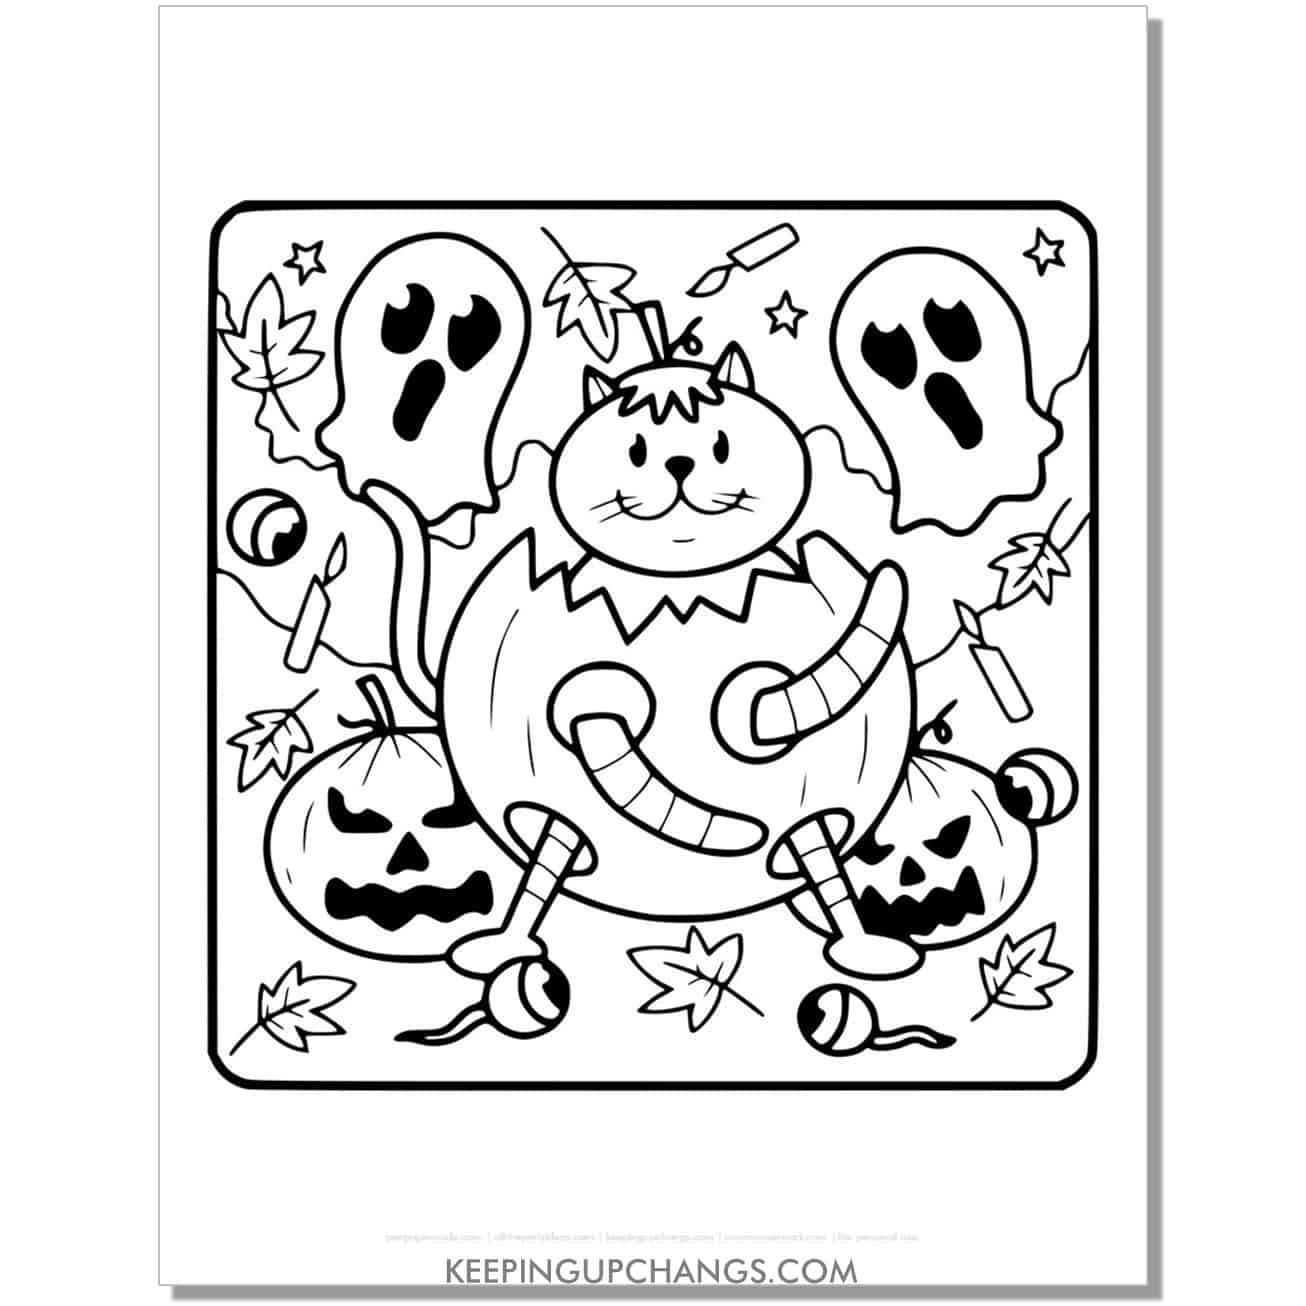 ghost, jack o lantern, halloween cat coloring page for kids.